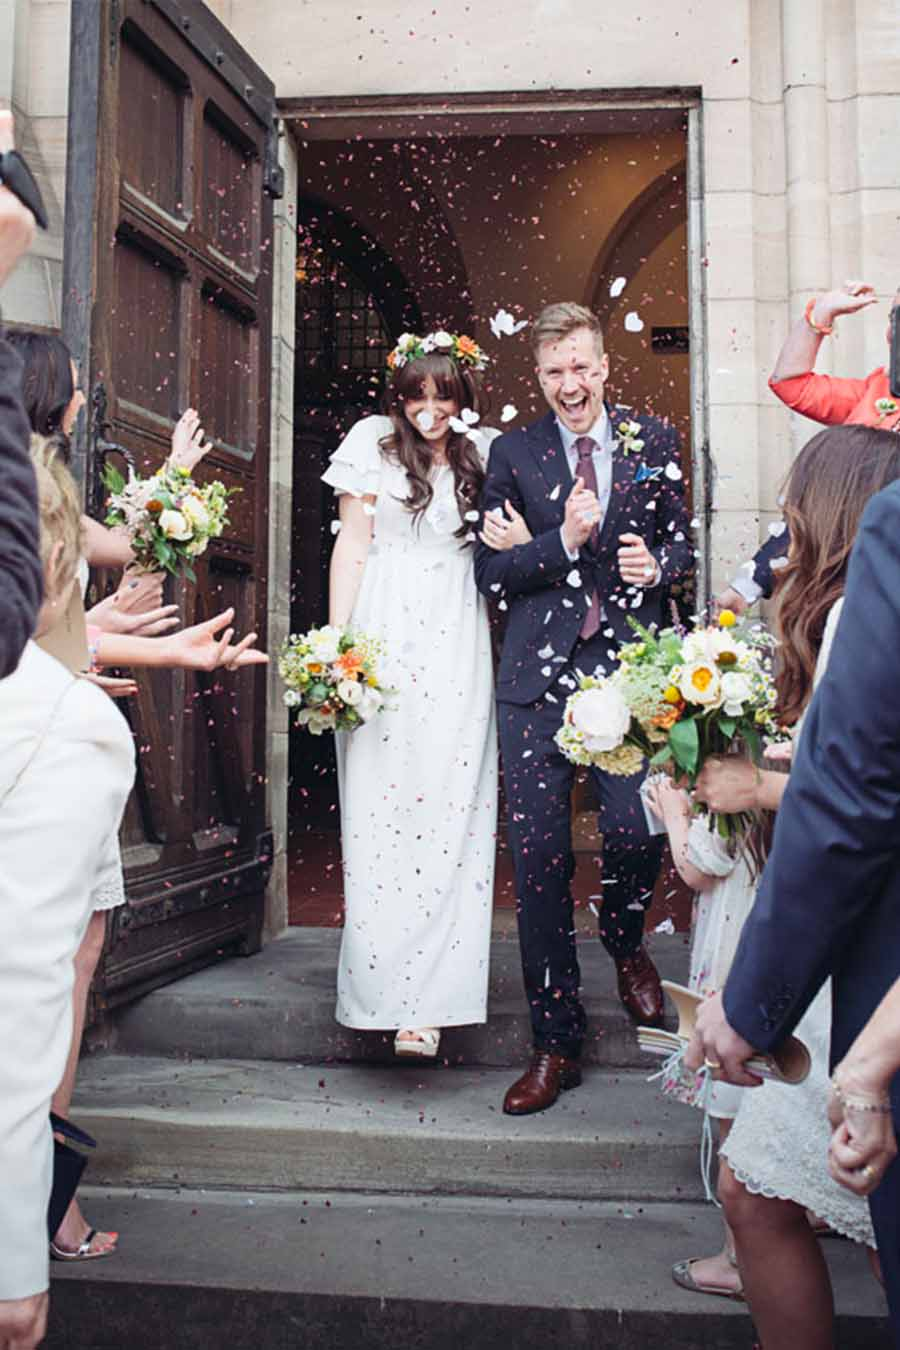 Bride and groom sprinkled with flowers